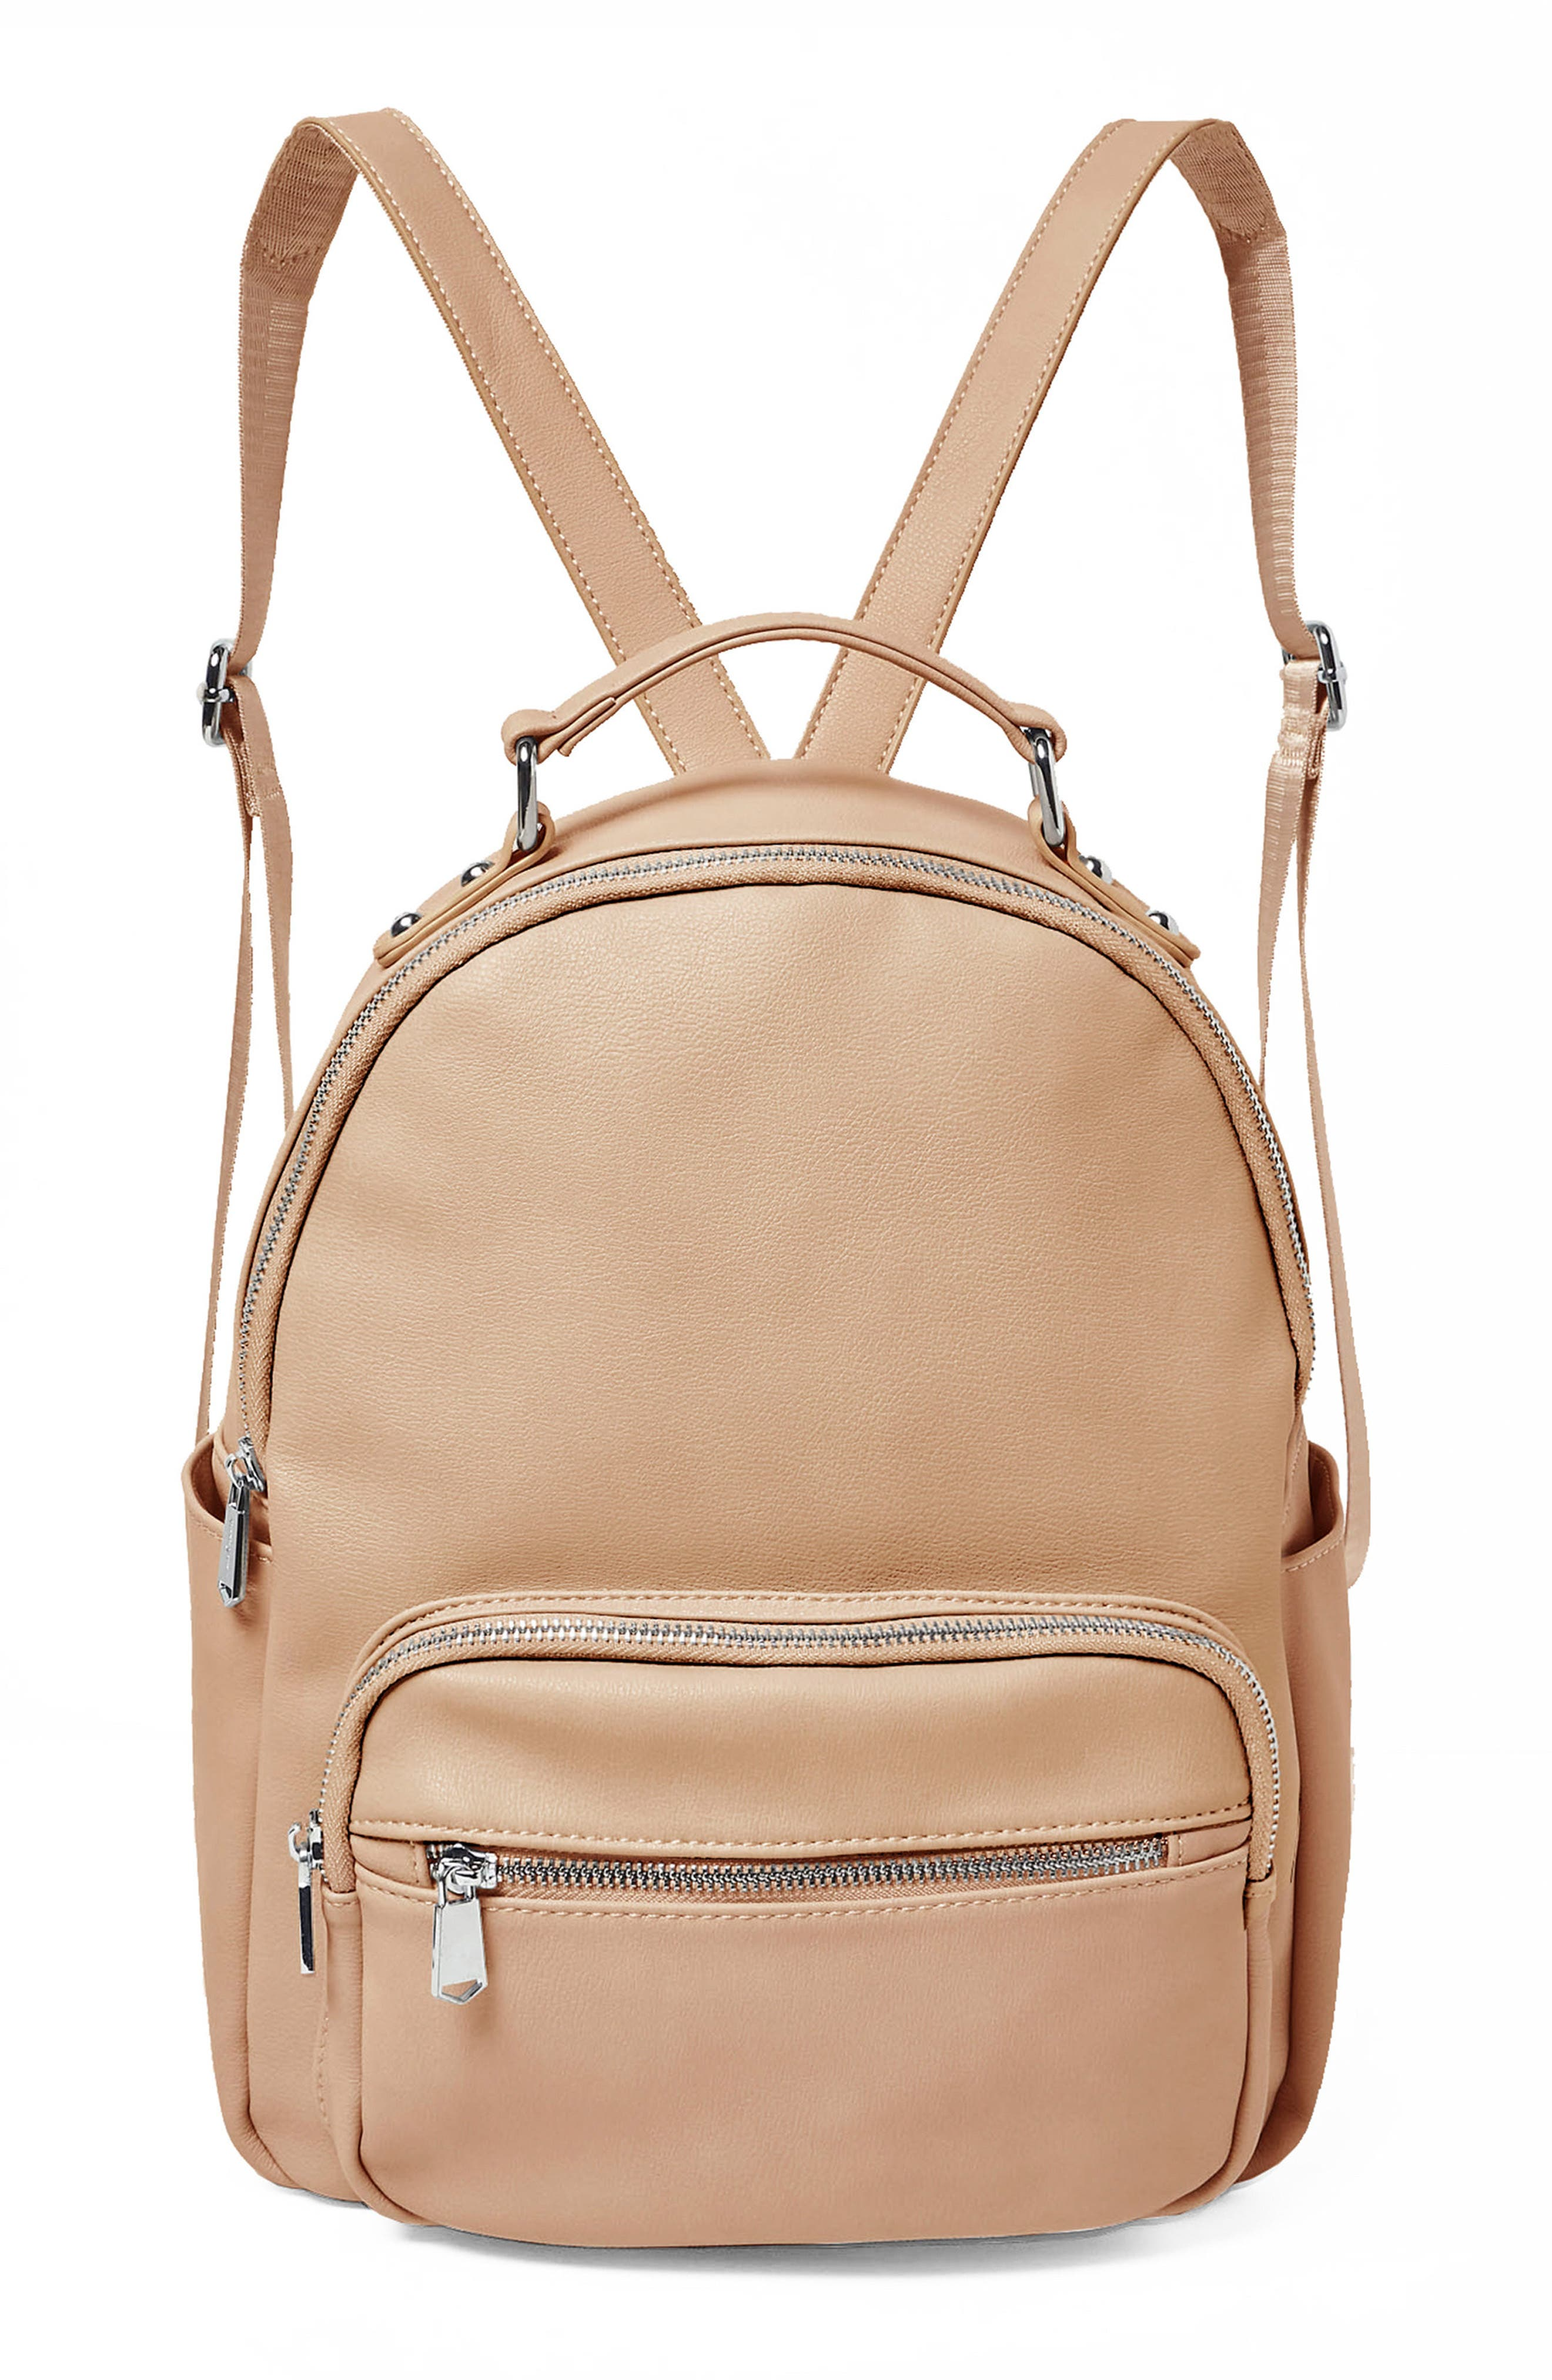 On My Own Vegan Leather Backpack,                             Main thumbnail 1, color,                             NUDE